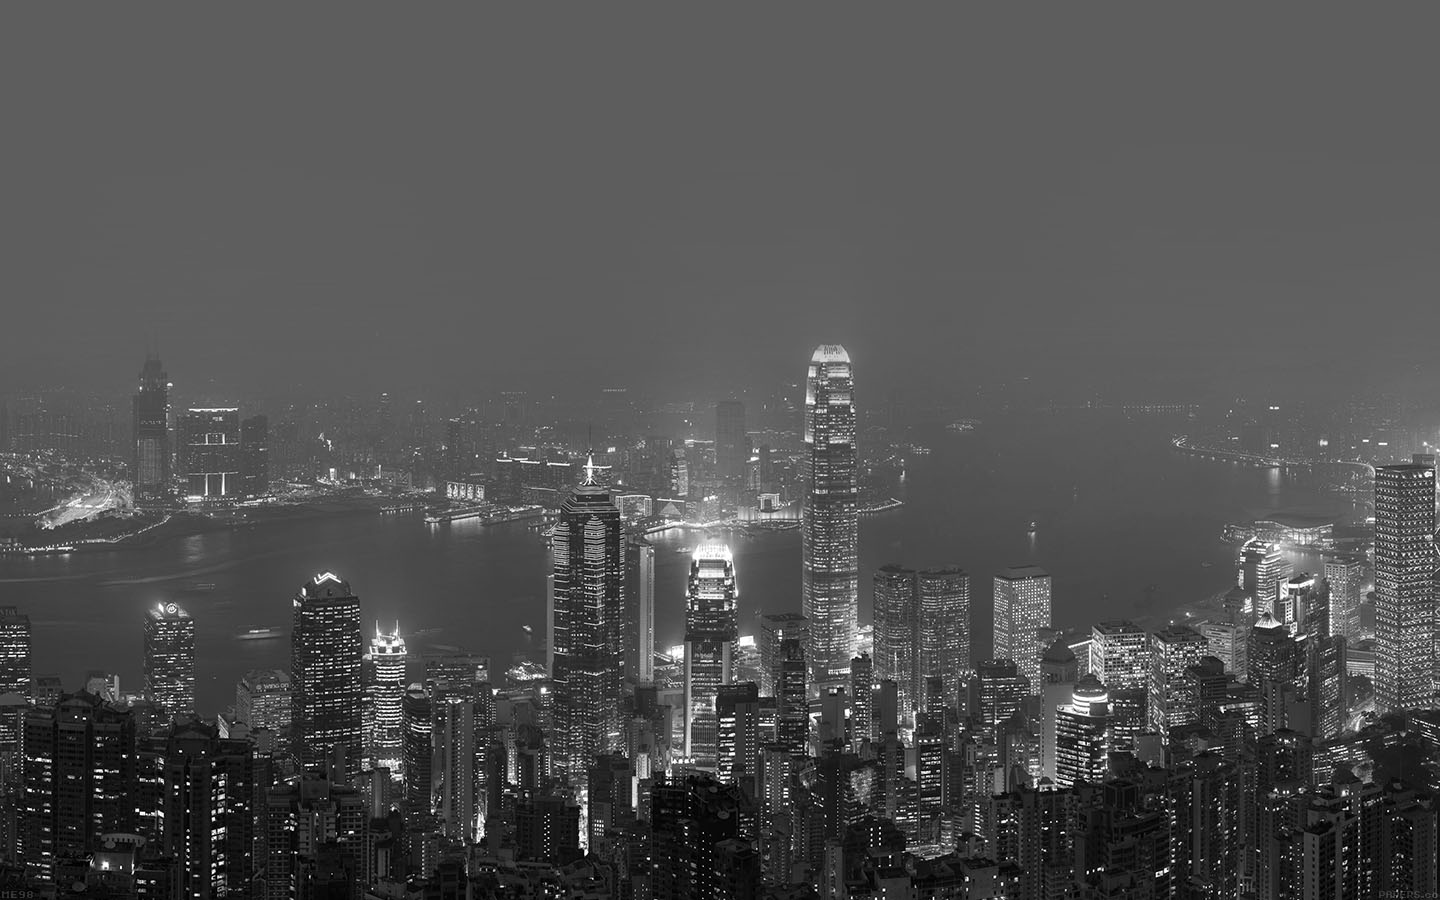 me98-skyline-hongkong-dark-city-night-live - Papers.co